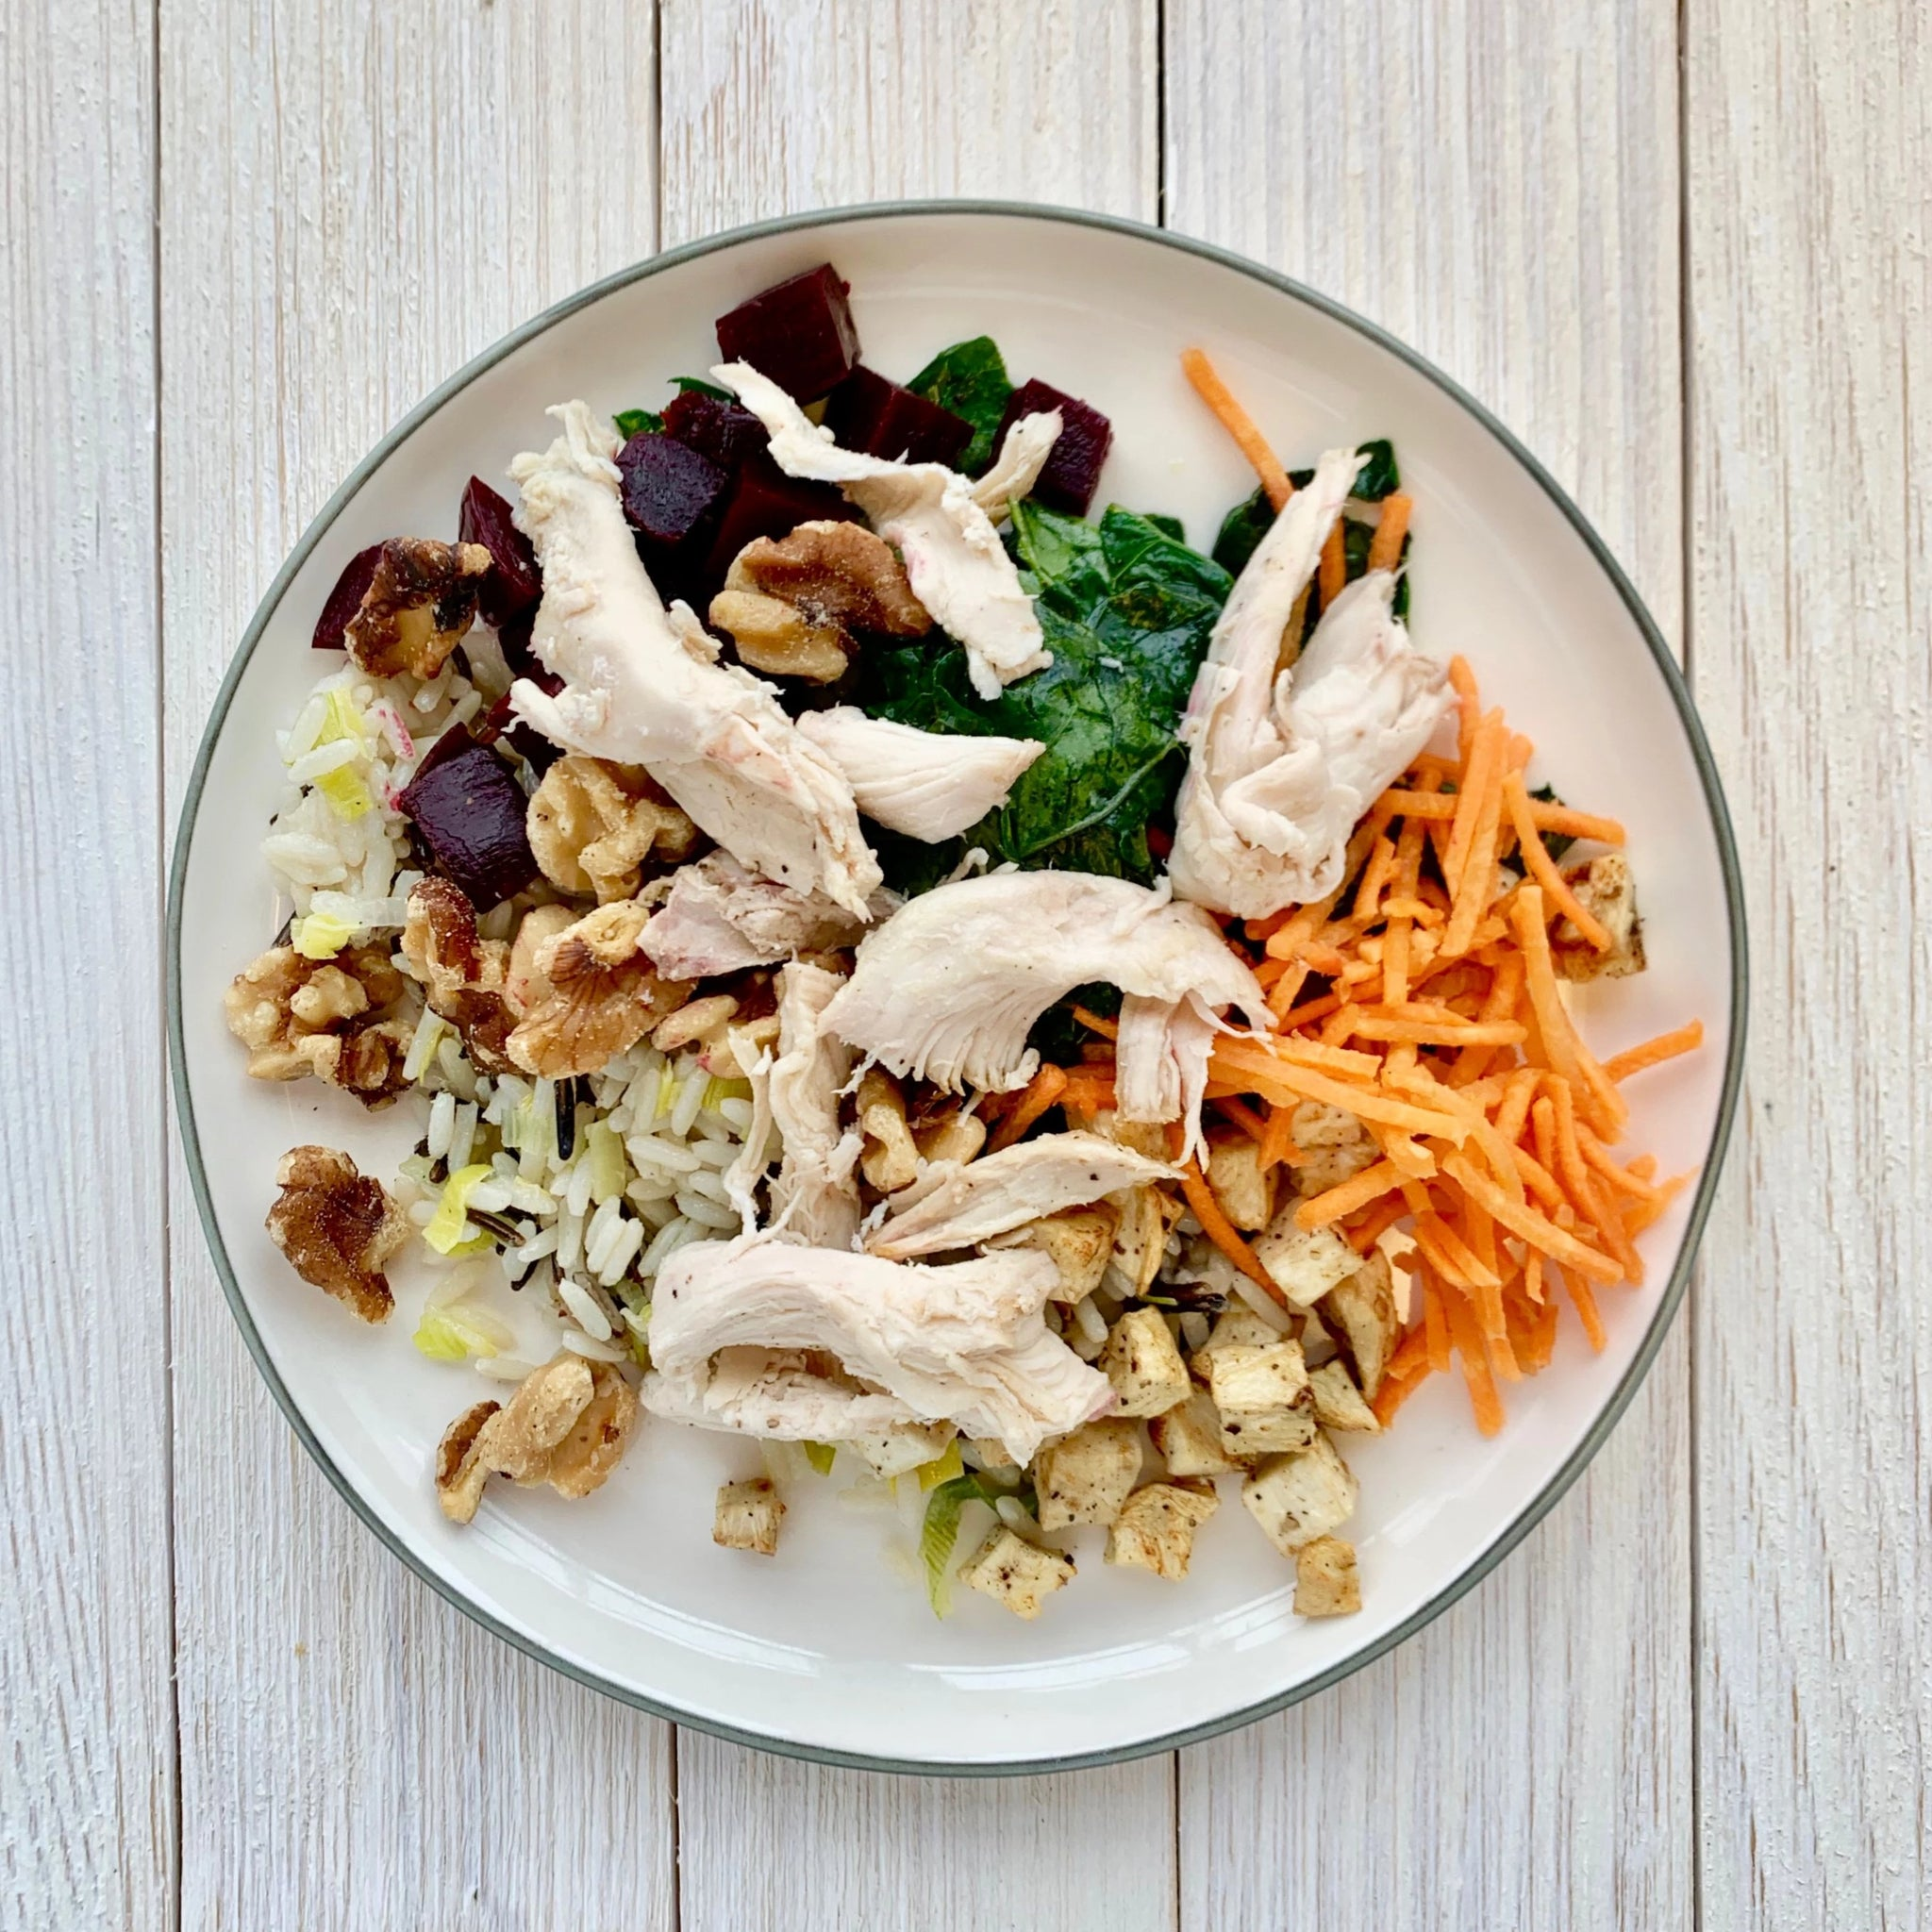 Chicken, Vegetable & Wild Rice Bowl